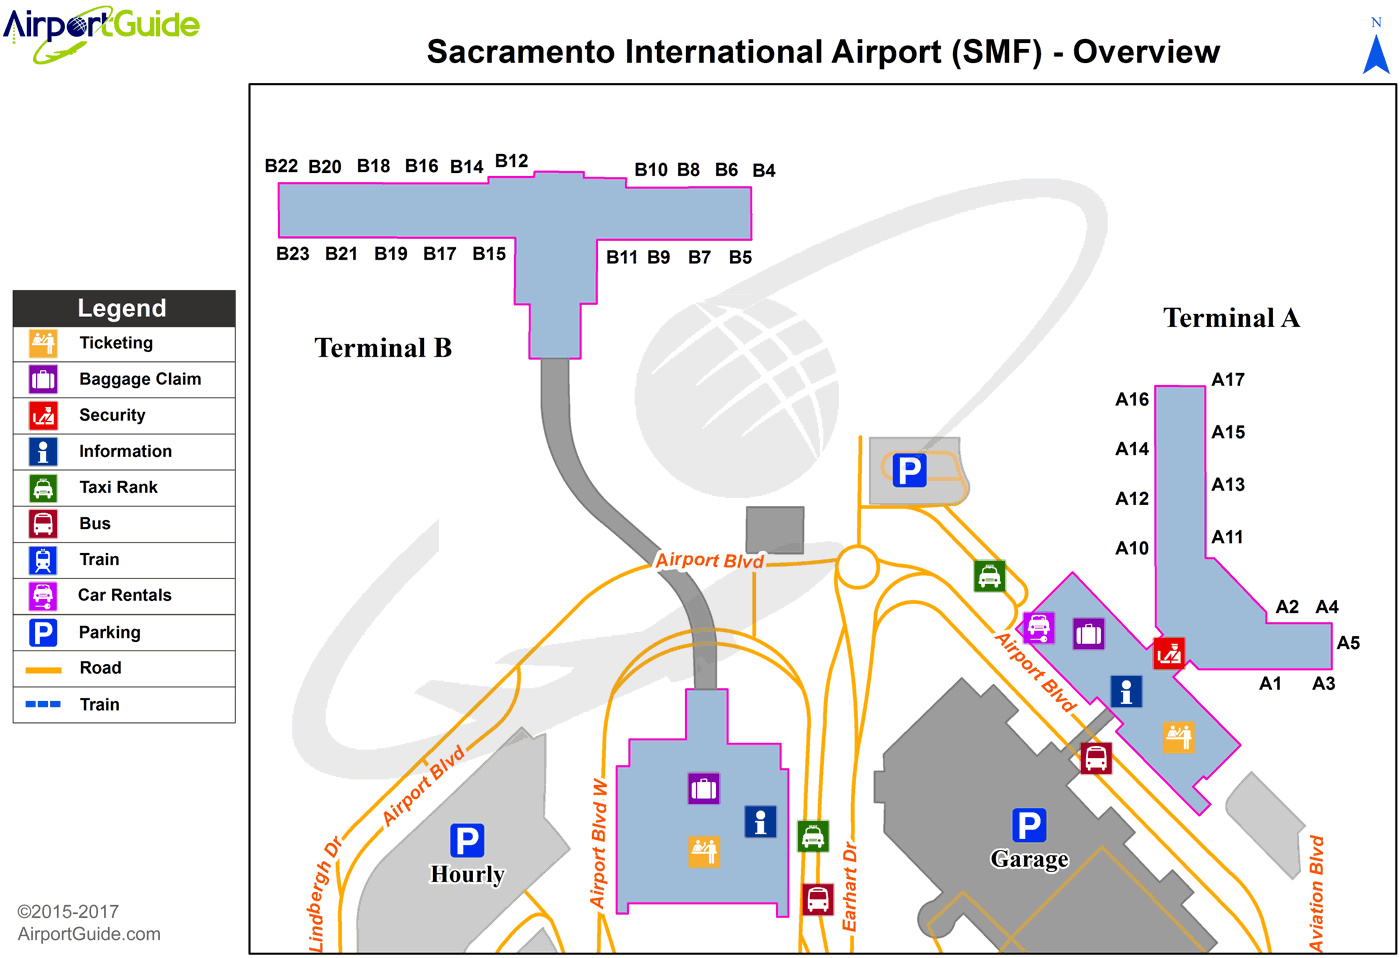 sacramento  sacramento international (smf) airport terminal maps travelwidgetcom. sacramento  sacramento international (smf) airport terminal maps